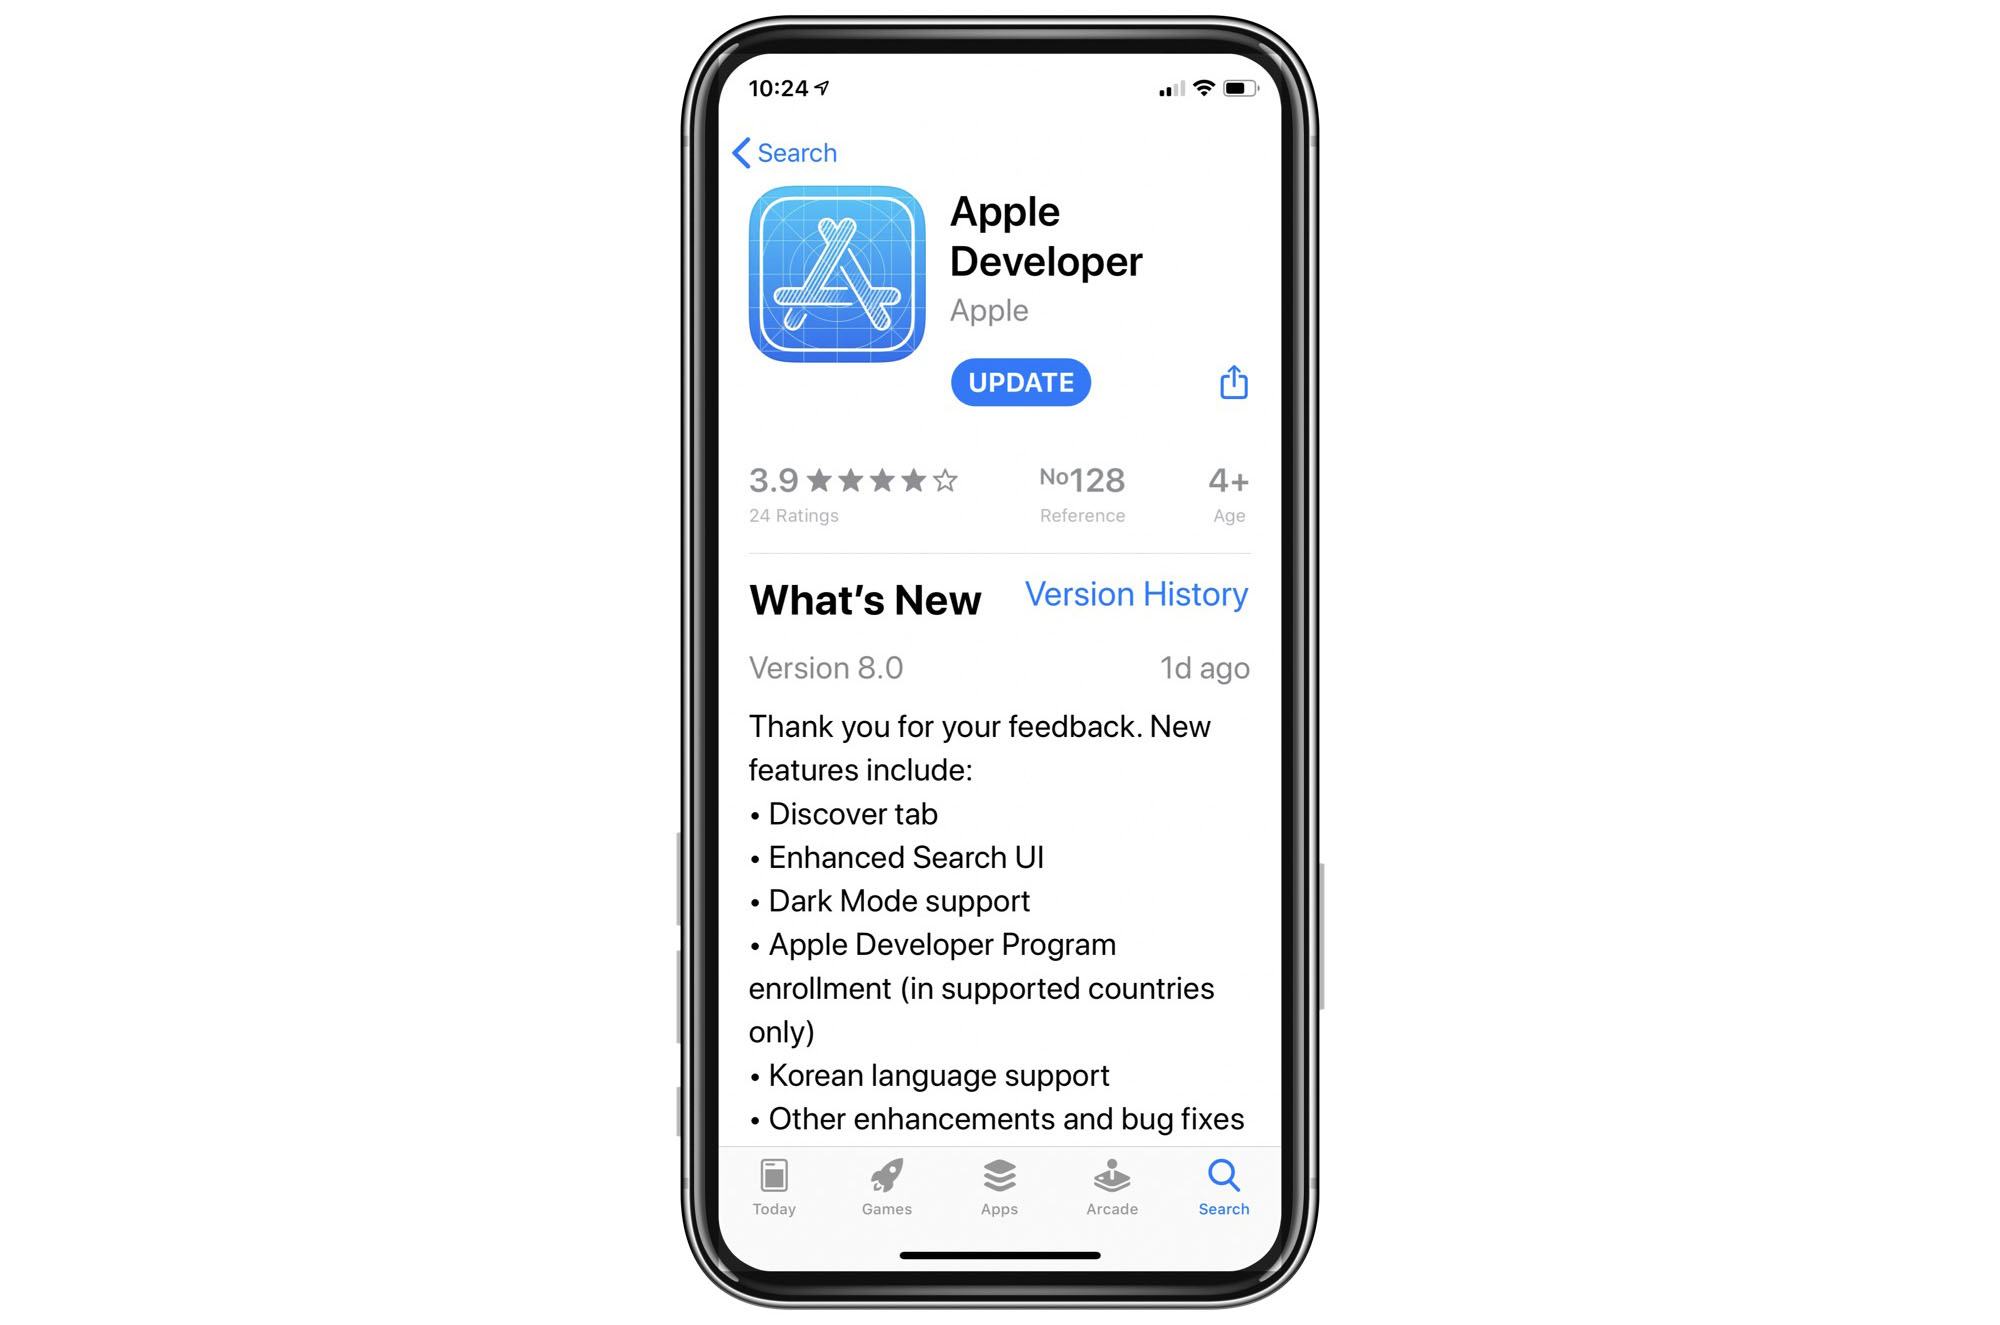 https://www.macfreak.nl/modules/news/images/zArt.AppleDeveloper-app-iPhoneX.jpeg